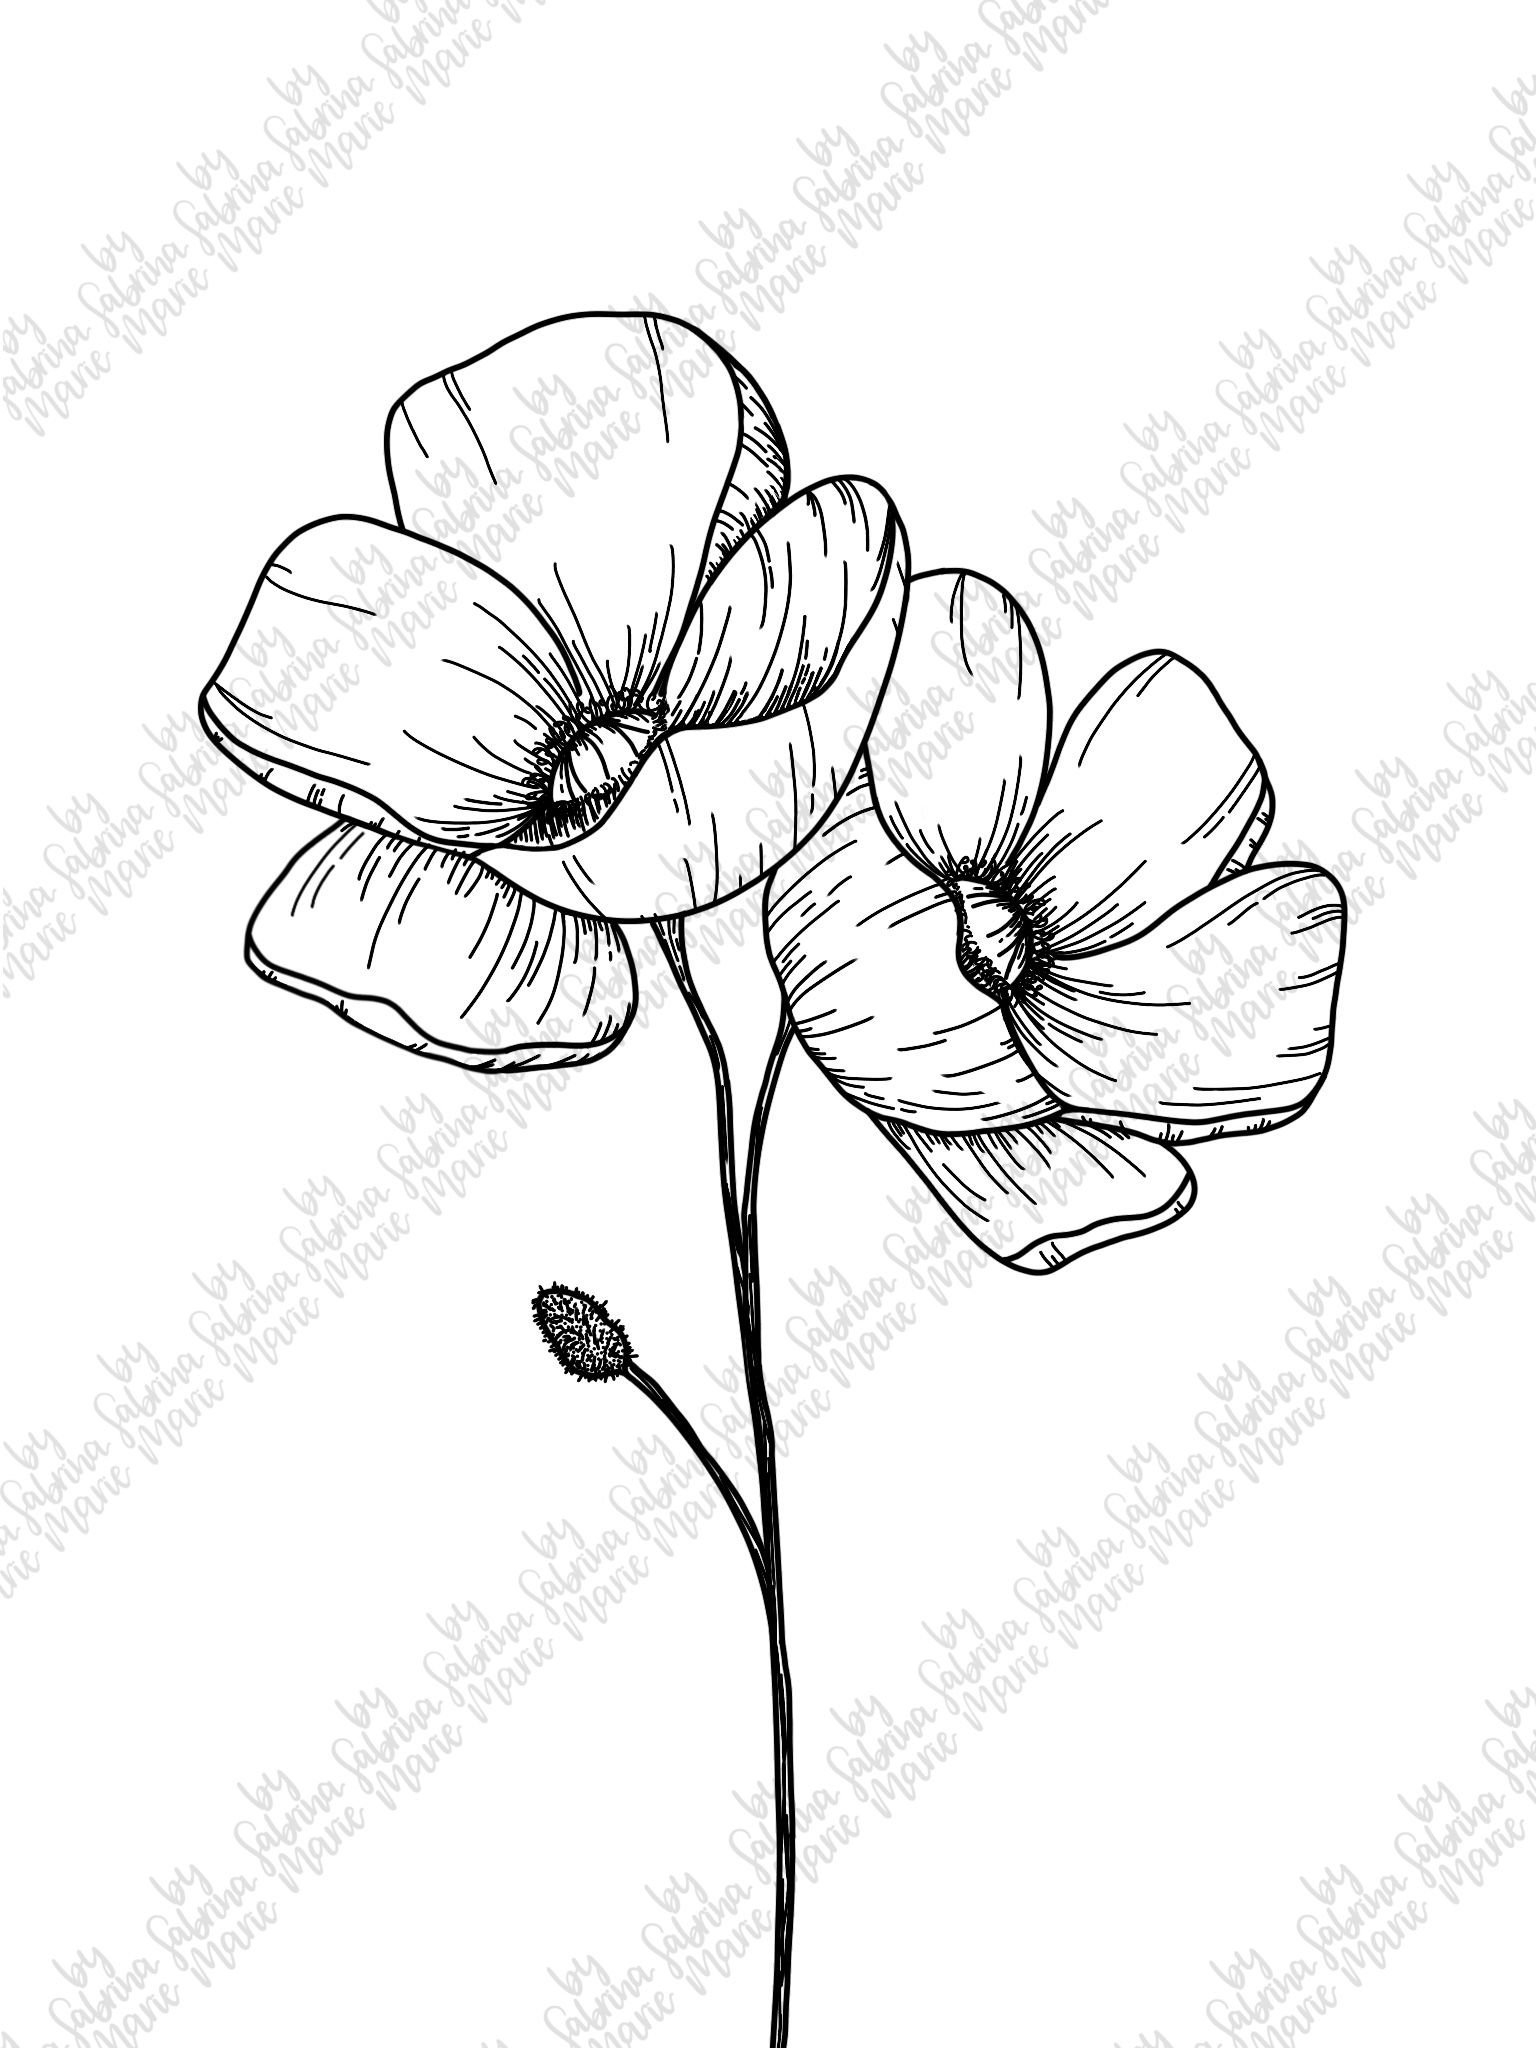 Robust Lessons Flower Line Drawing Png 2019 Flower Line Drawings Flower Drawing How To Draw Hands